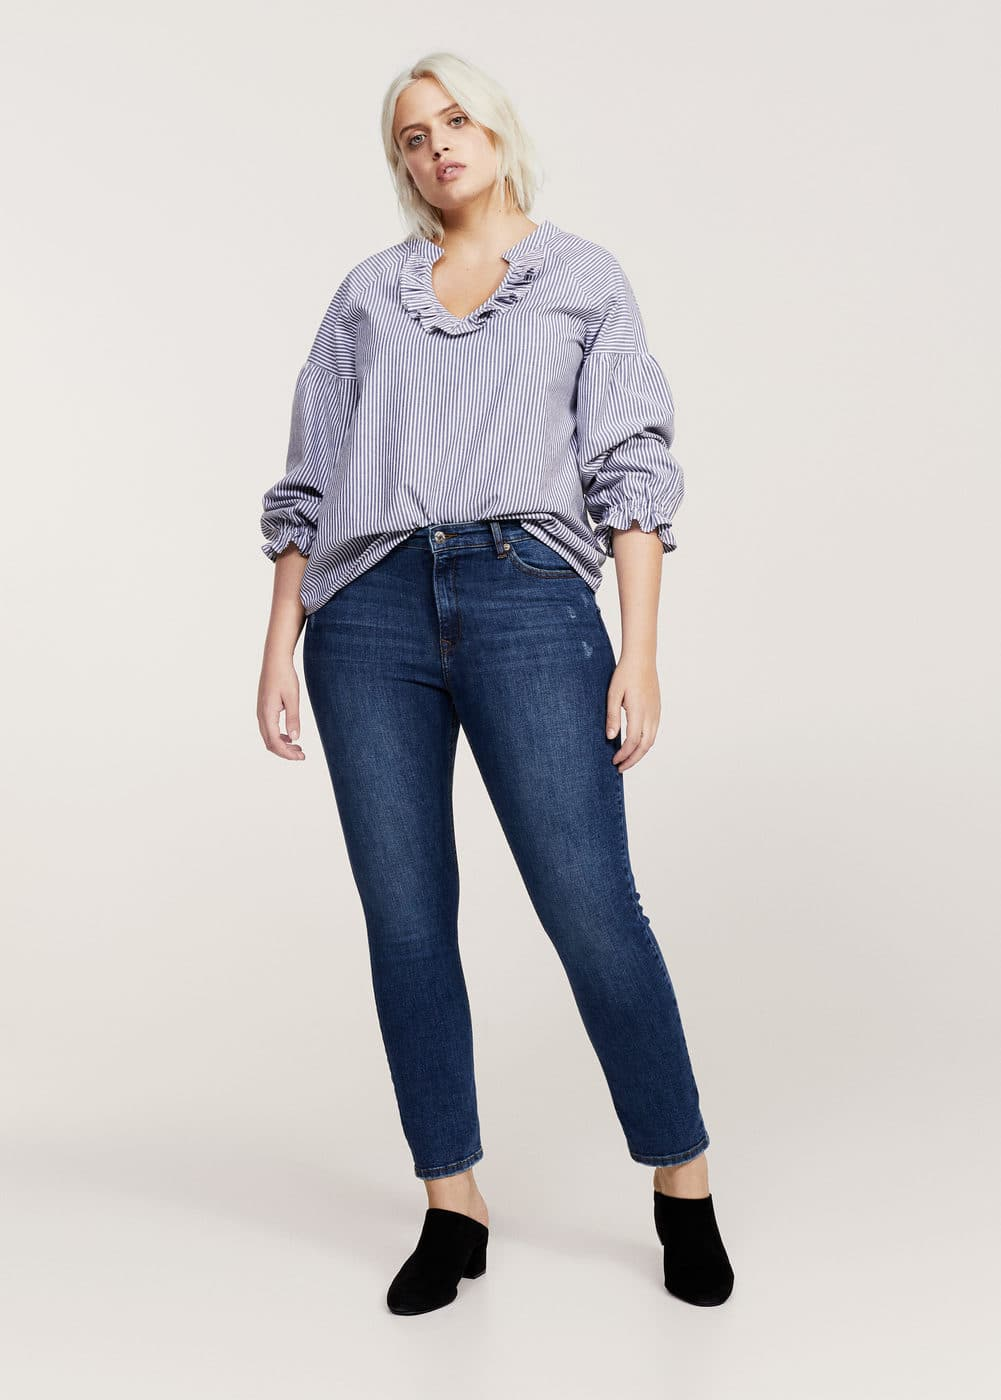 Slim-fit push up mariah jeans | VIOLETA BY MANGO